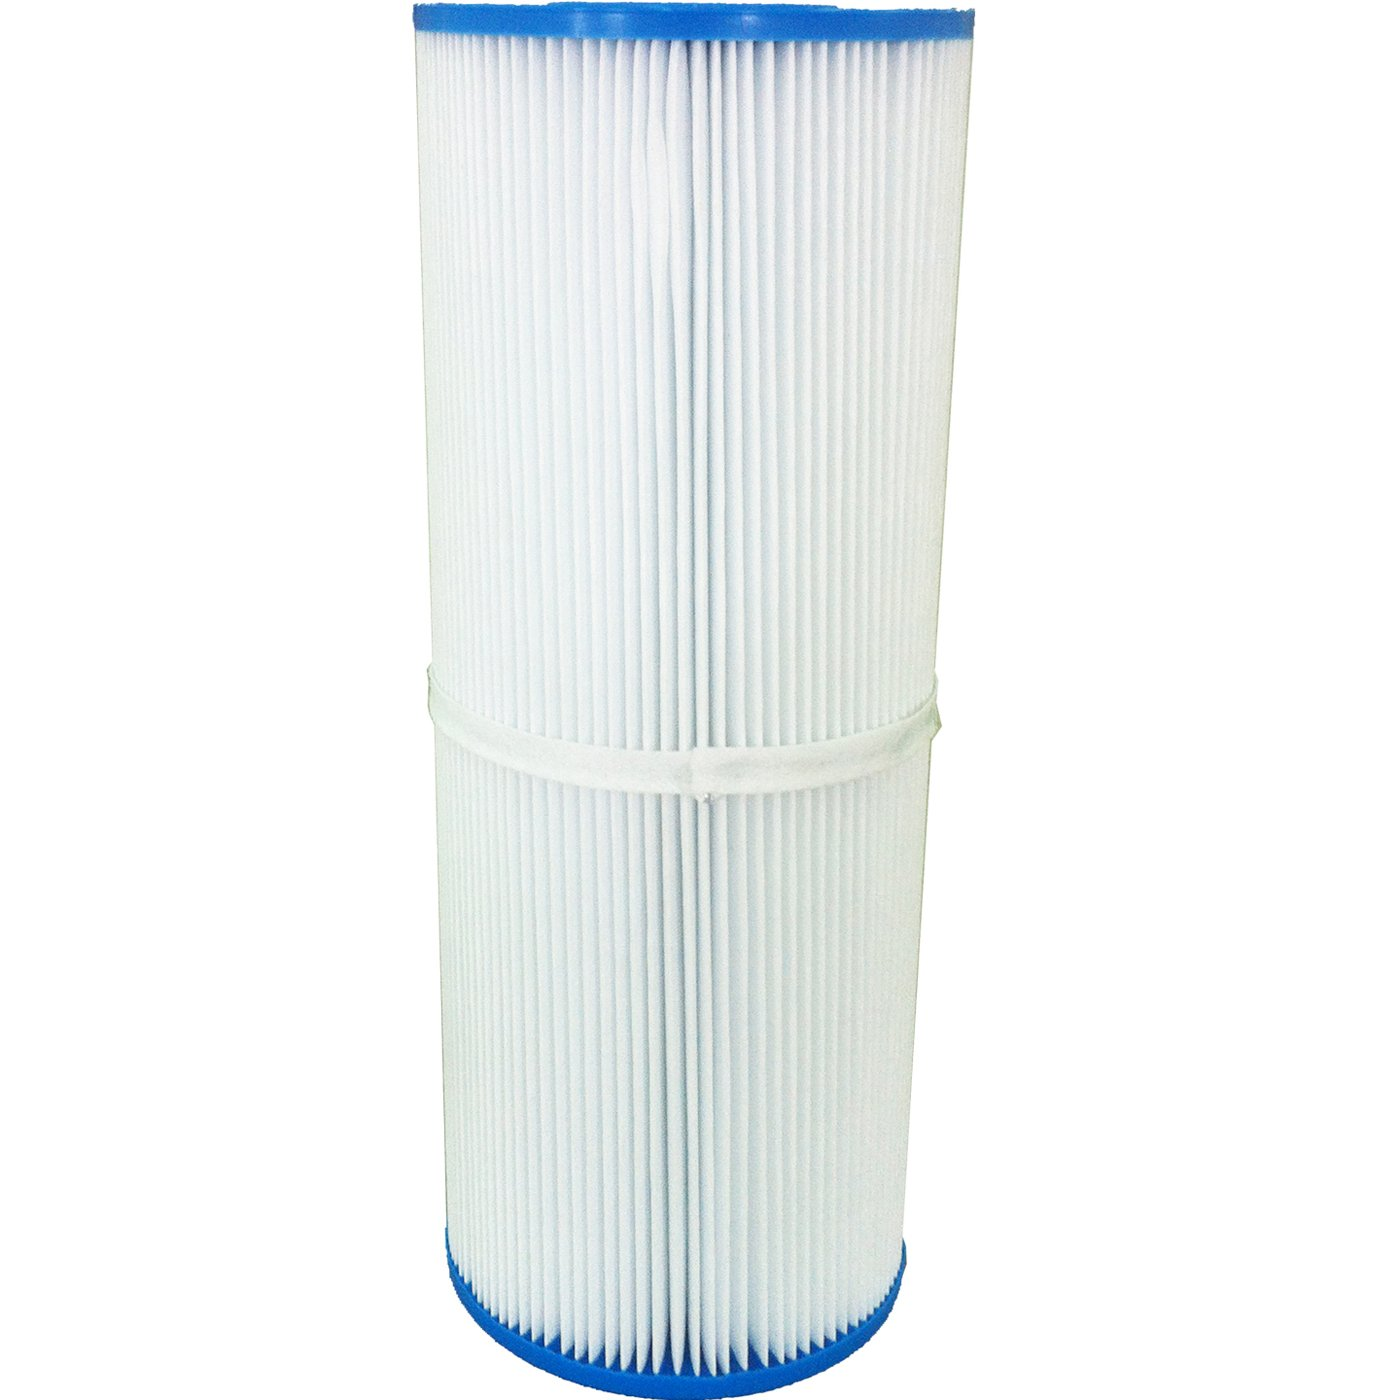 Tier1 Replacement for Dynamic 17-2327, Pleatco PRB25-IN, 817-2500, R173429, Unicel C-4326, Filbur FC-2375 Spa Filter Cartridge